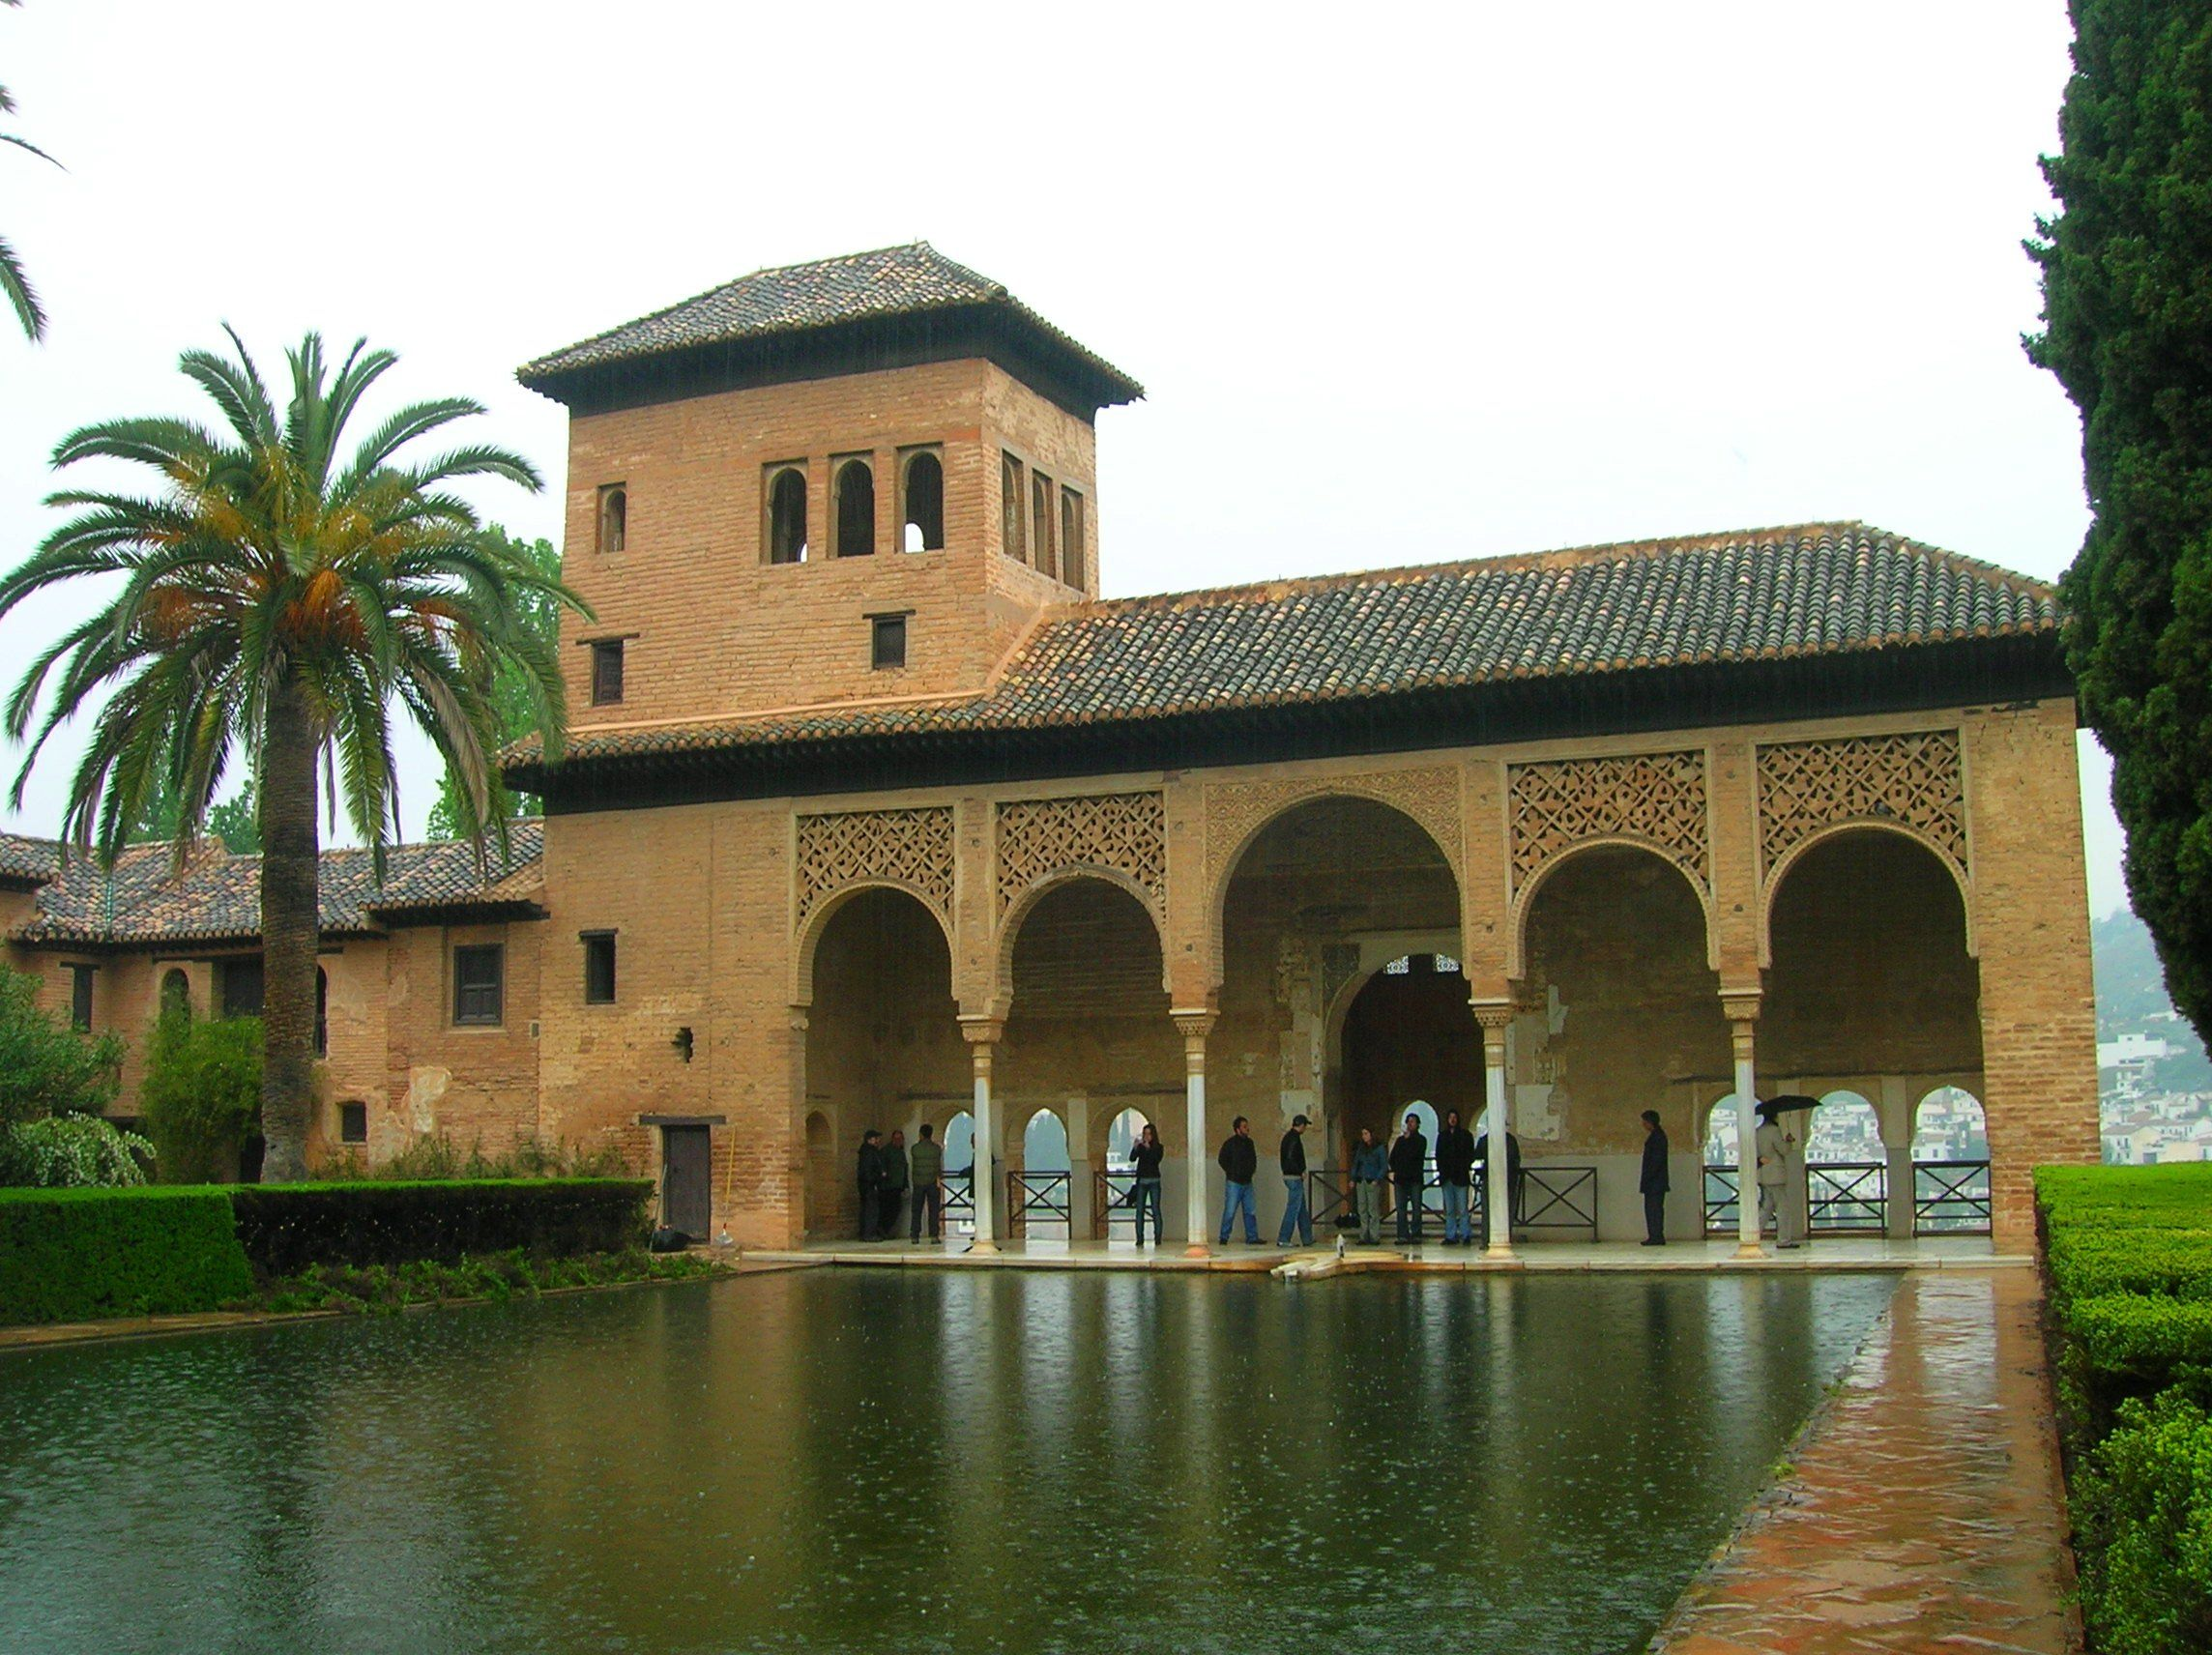 The Most Famous Spanish Stylethe Alhambra Where Columbus Had An Audience With